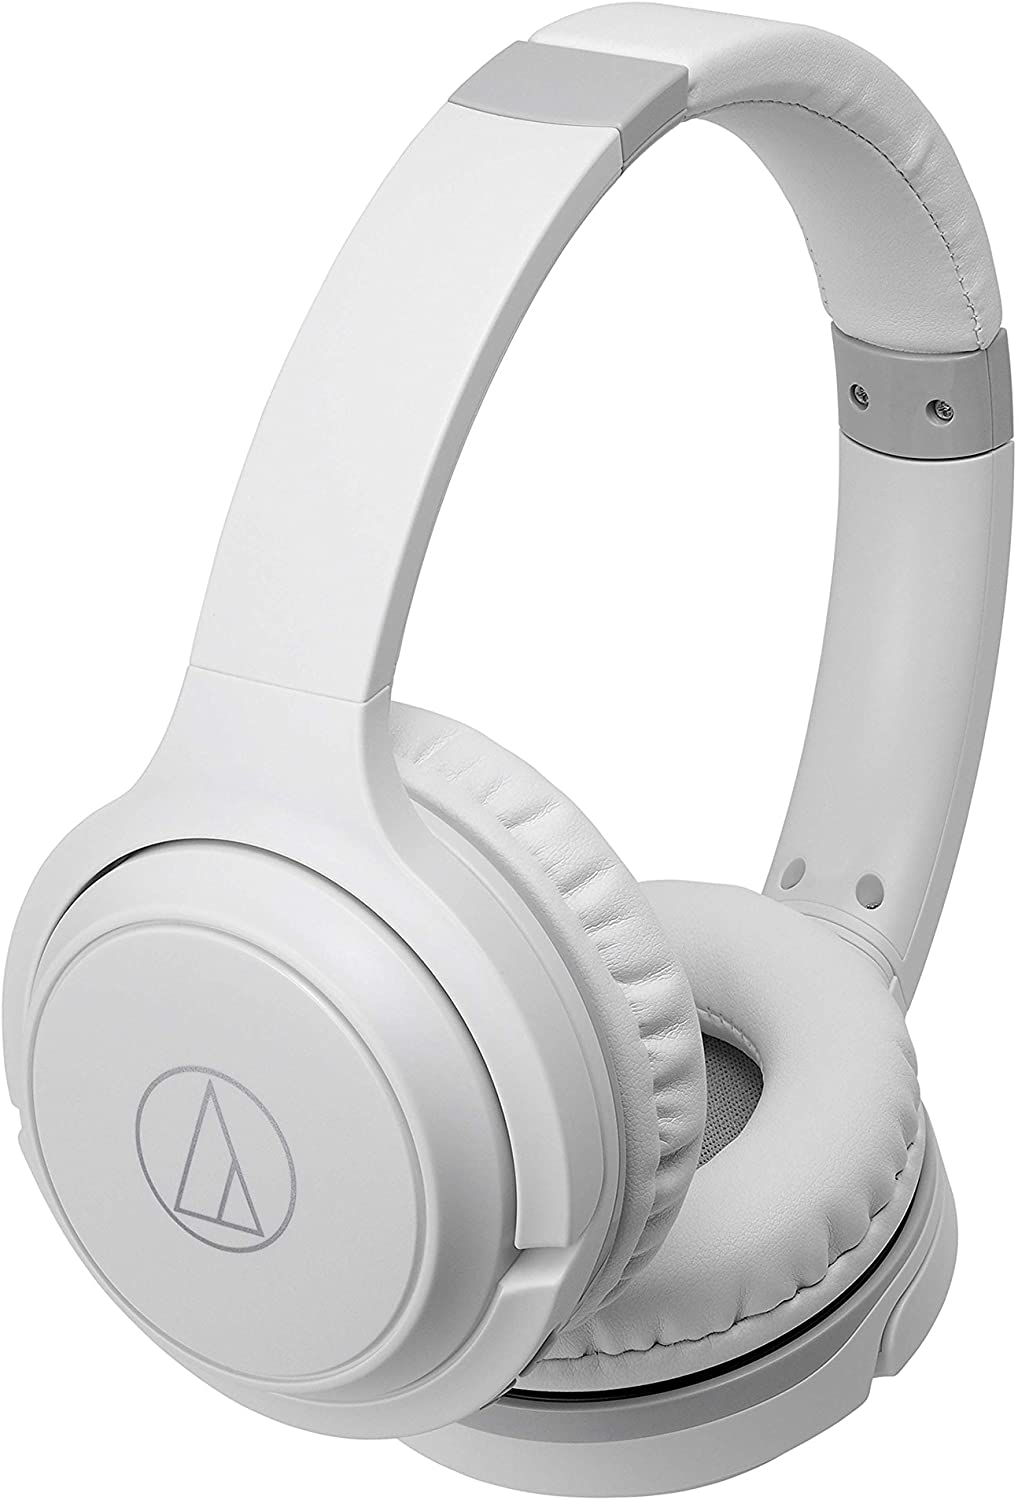 Audio-Technica ATH-S200BTWH, Auriculares Plegables, Bluetooth, 18X23X26, Blanco